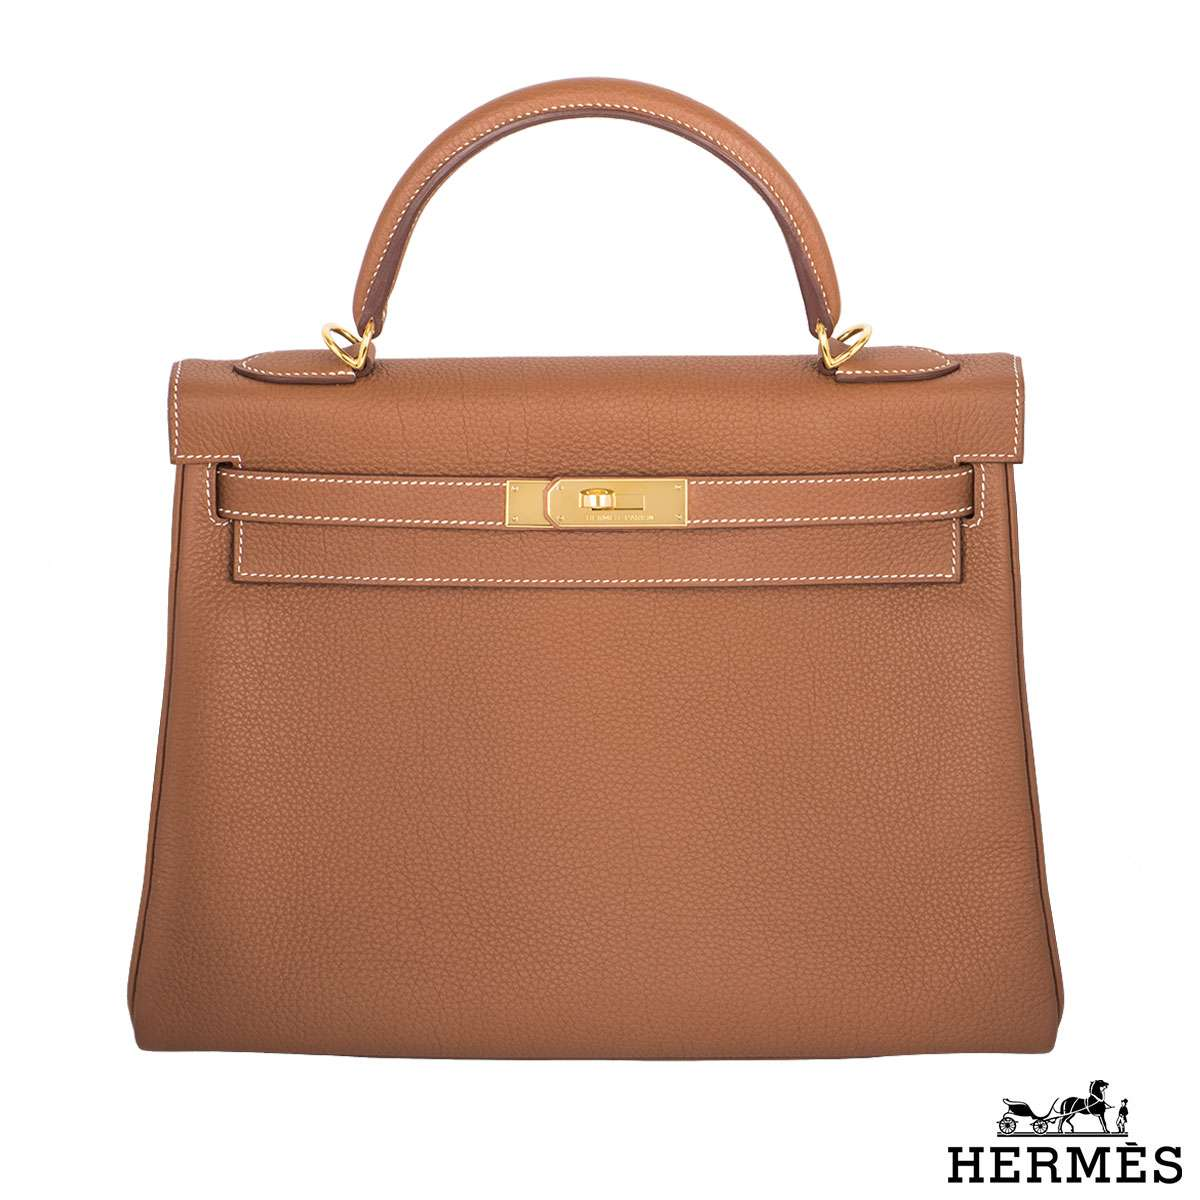 Hermès 32cm GHW Brown Kelly Bag